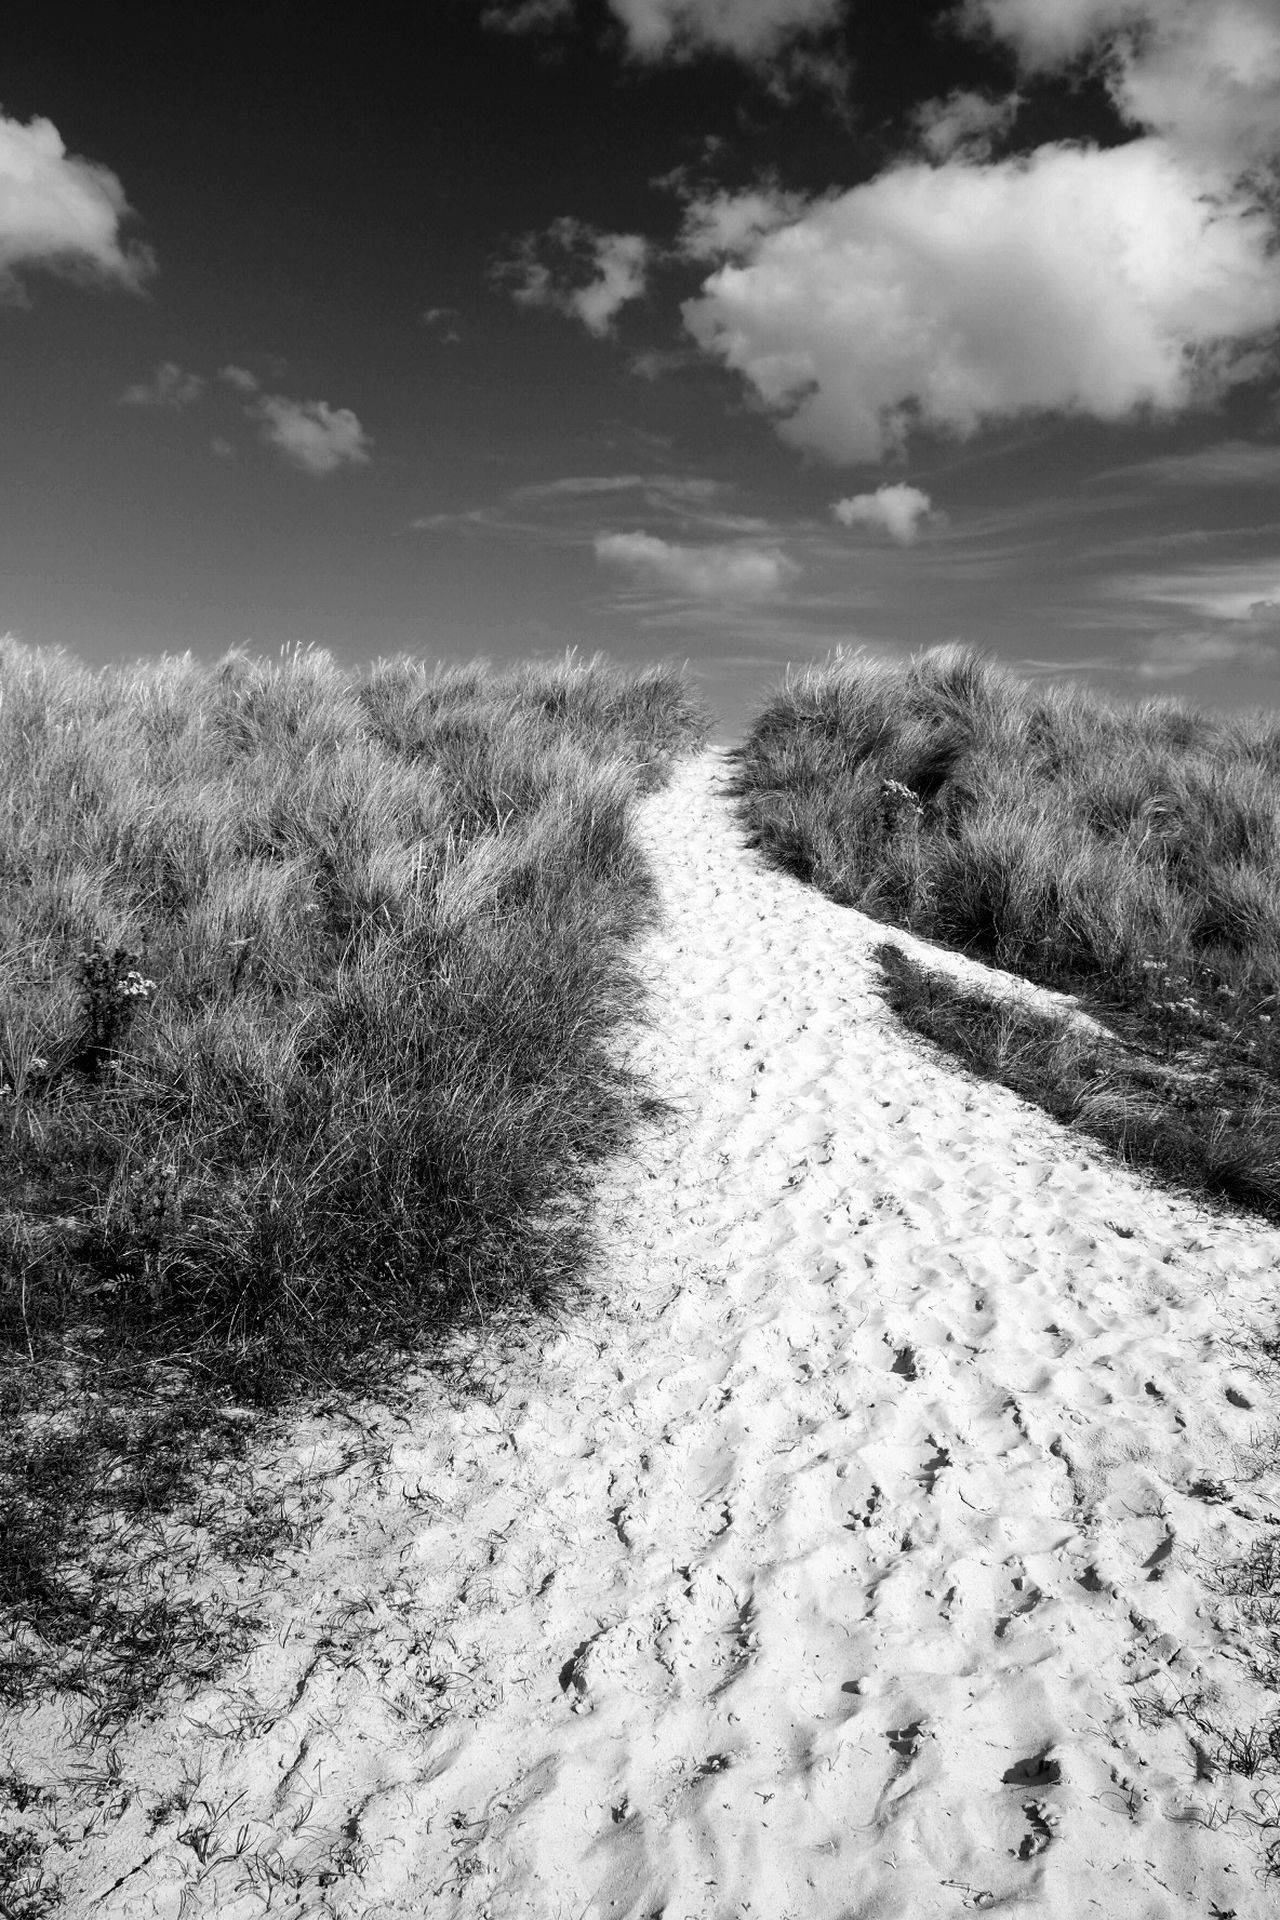 Sand dunes at Southwold, Suffolk, UK. Sand Sand Dune Beach Southwold Sand Dunes Tranquil Scene Suffolk Coast England Tranquility Grass Nature Track Coast Monochrome Stairway To Heaven